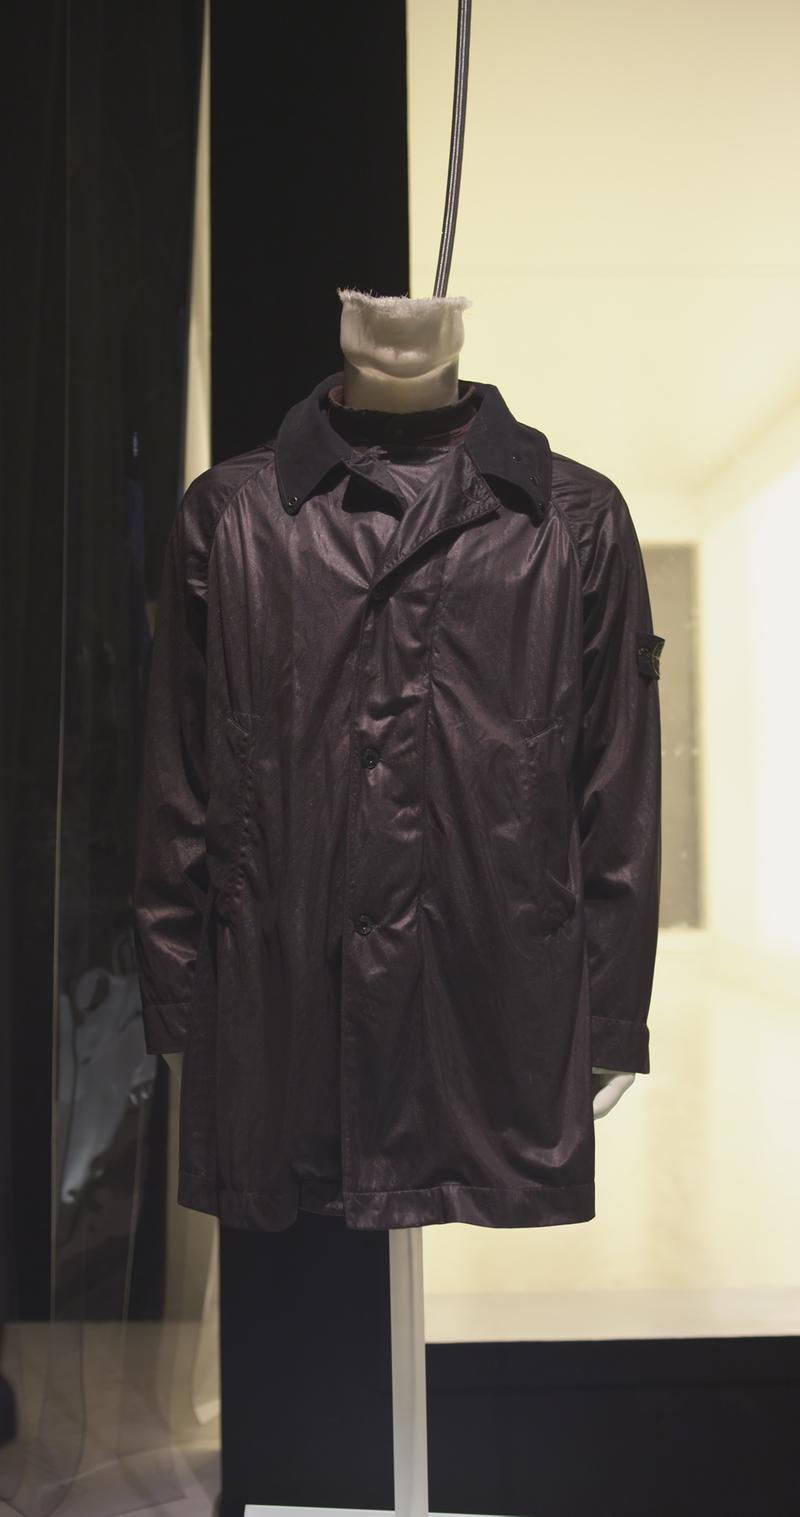 Long black jacket with button closure, wide collar and side pockets, displayed on a mannequin bust